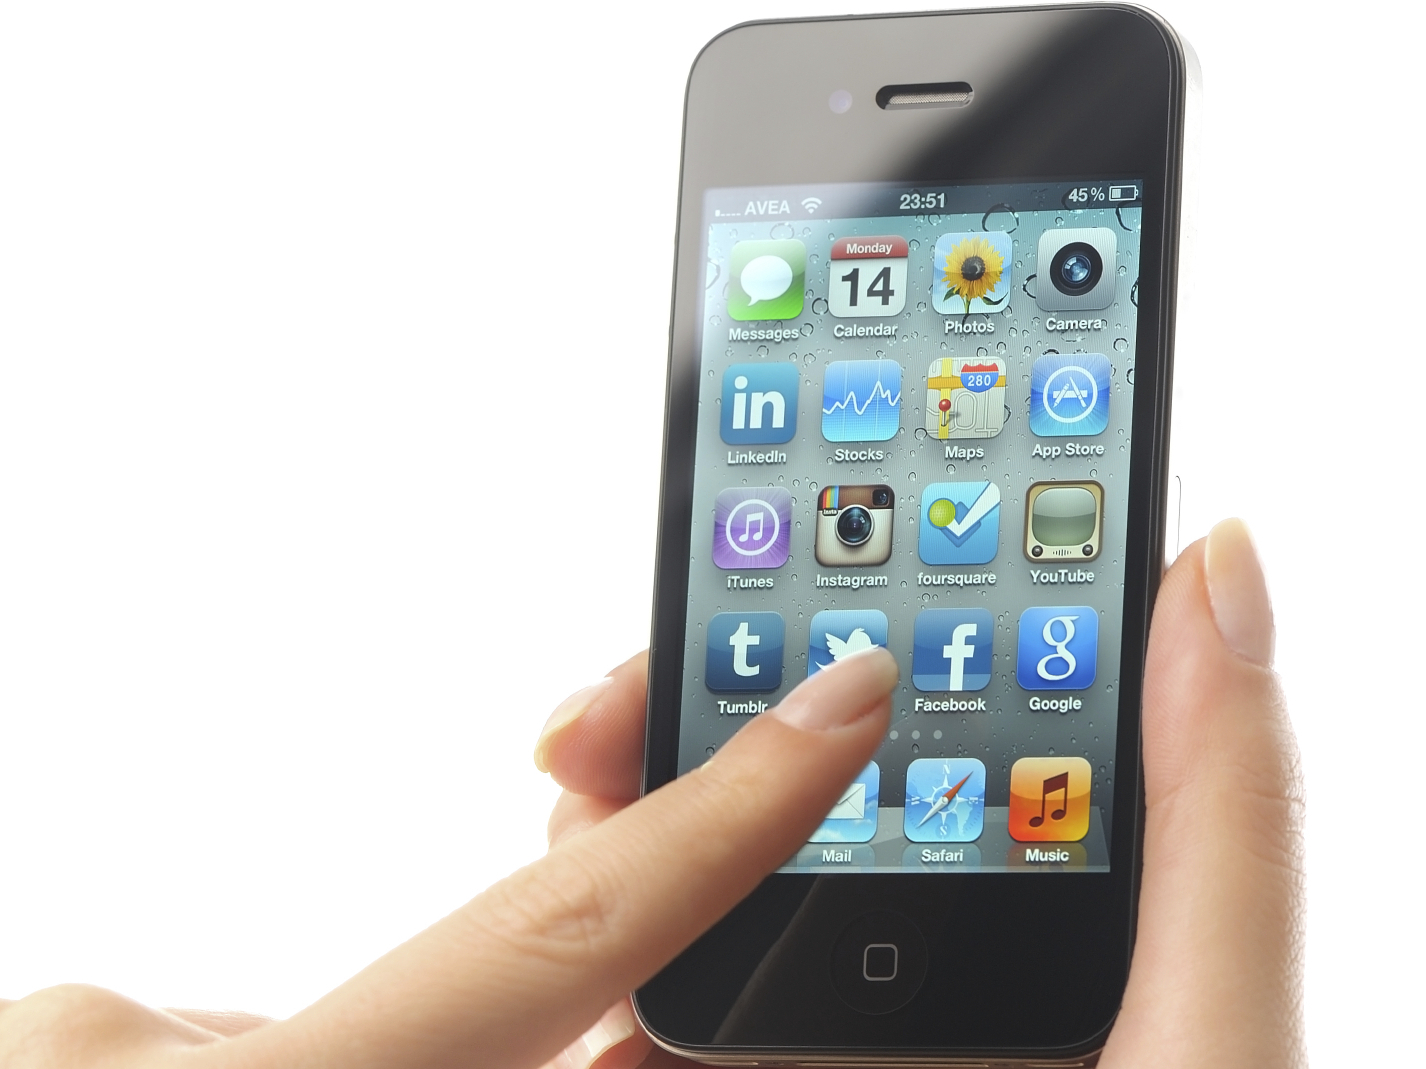 New Numbers Back Up Our Obsession With Phones